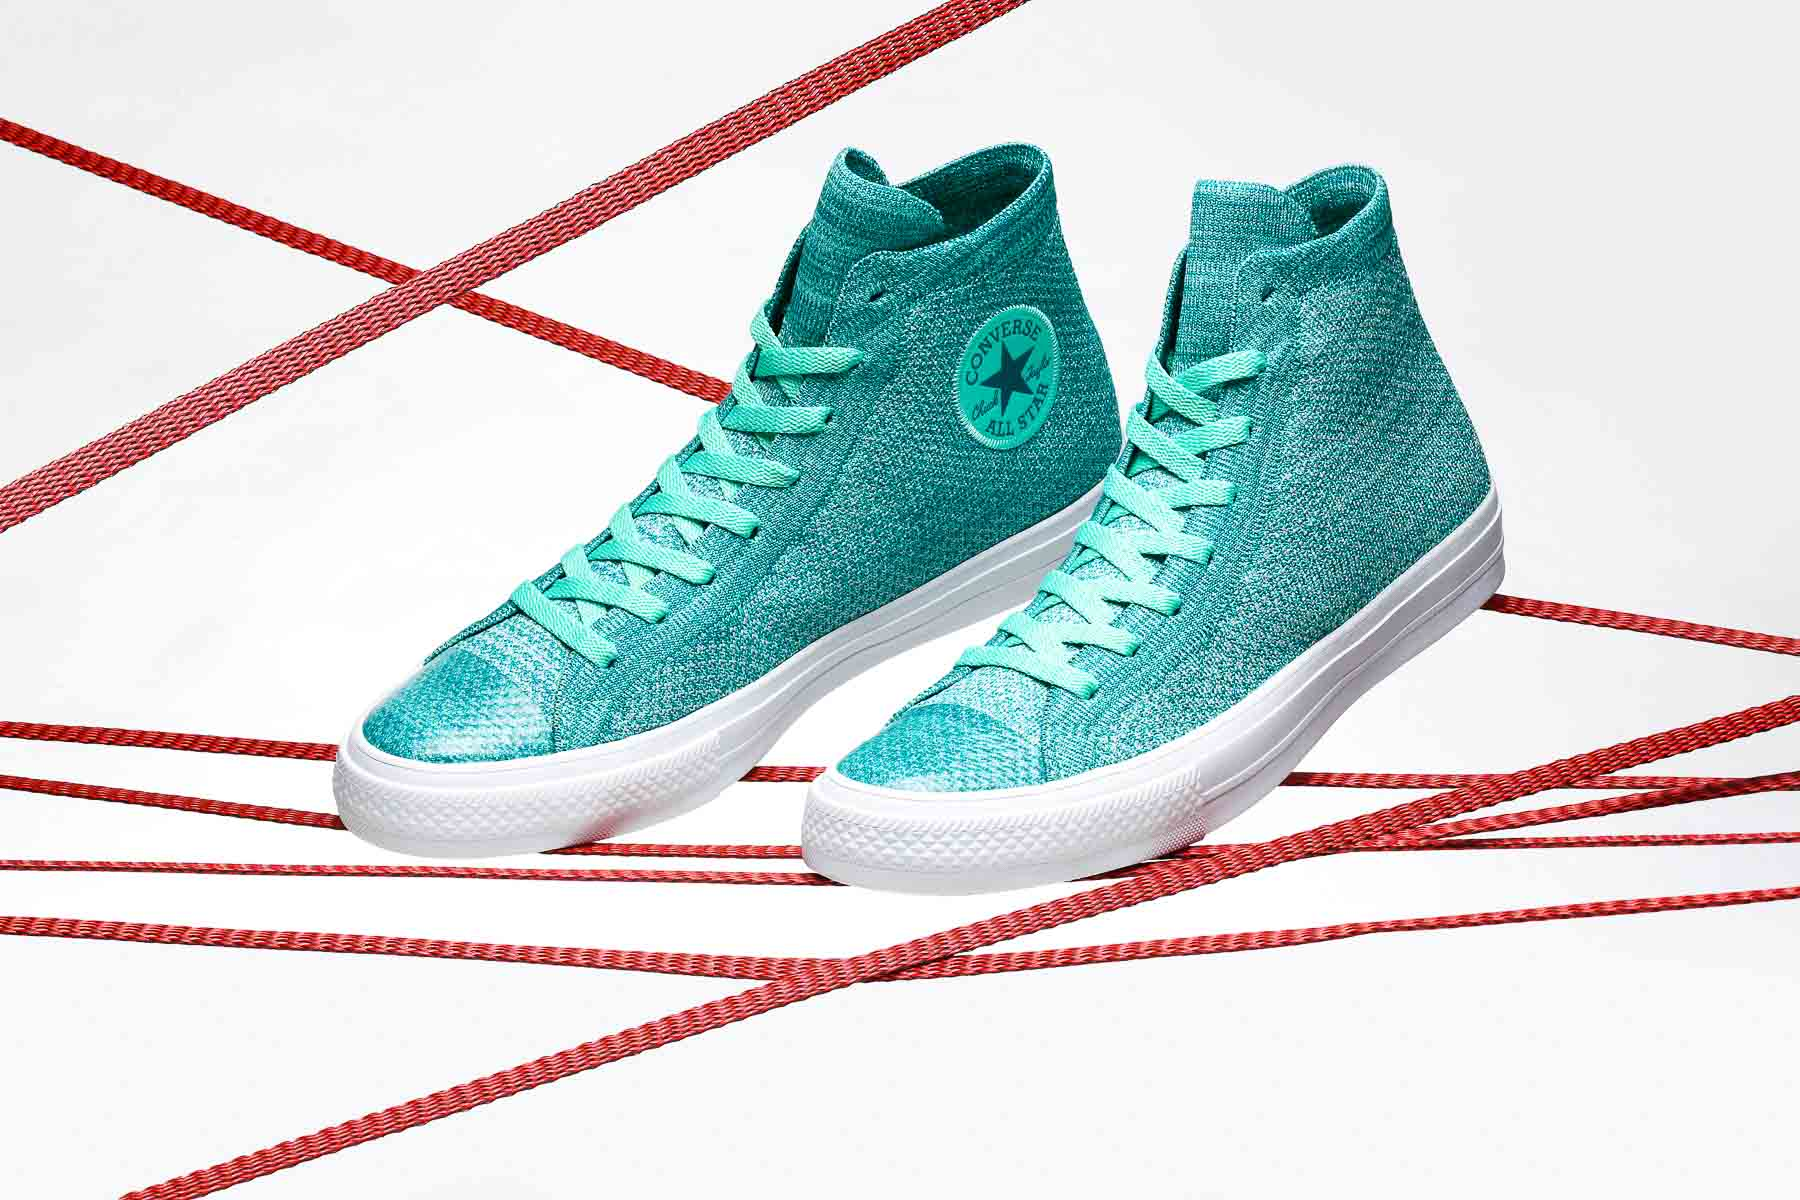 converse-chuck taylor all star x nike flyknit-3